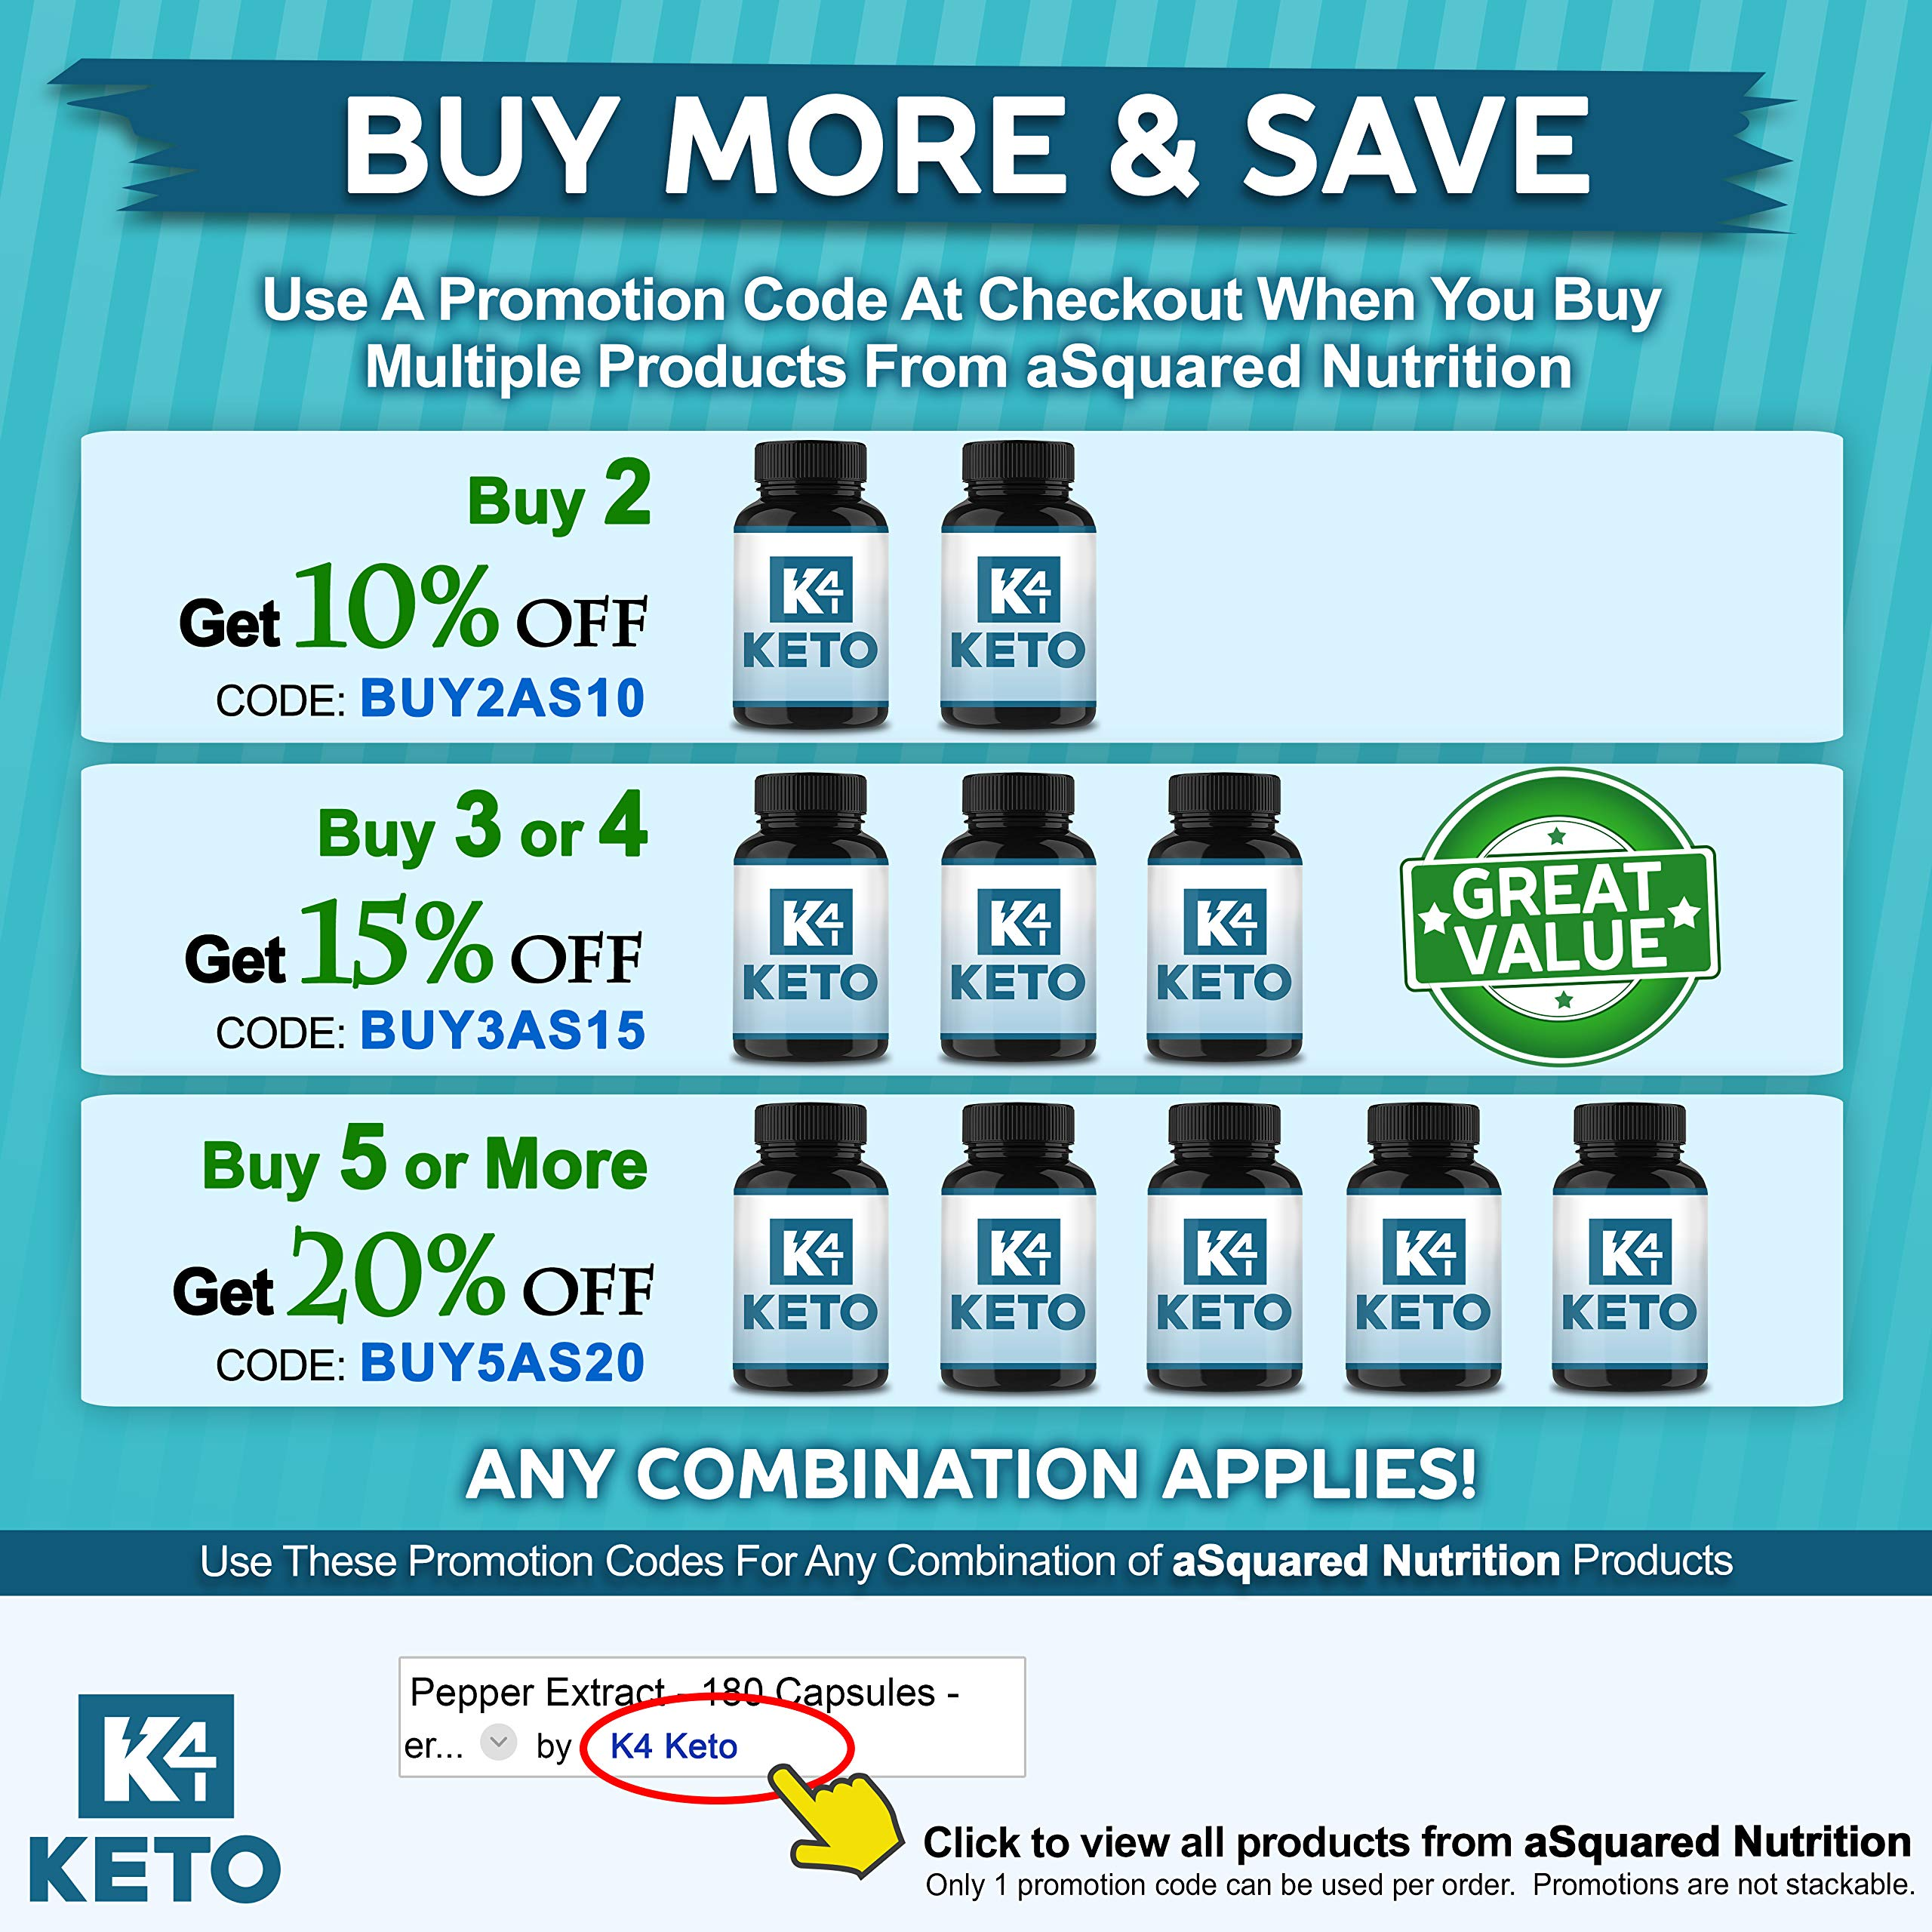 K4 Keto BHB - Exogenous Ketones BHB Salts Capsules - 2000mg of Patented goBHB Beta-Hydroxybutyrate - Ketone Supplement Pills to Support Ketogenic Diet & Ketosis by K4 Keto (Image #7)